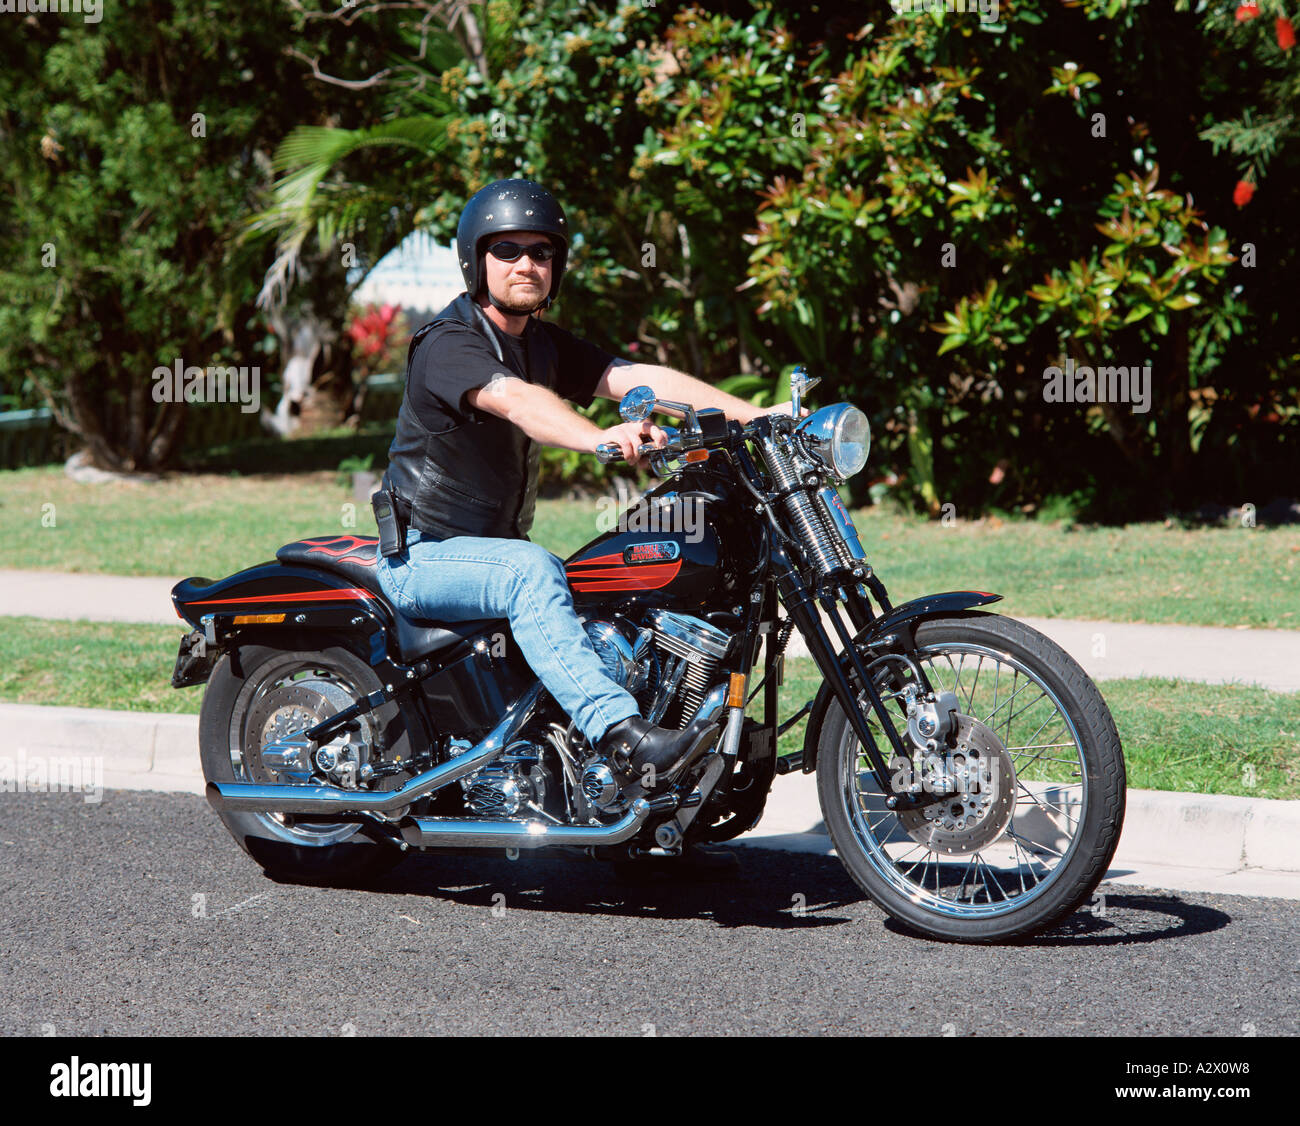 Man riding Harley Davidson motorcycle on suburban street Stock Photo